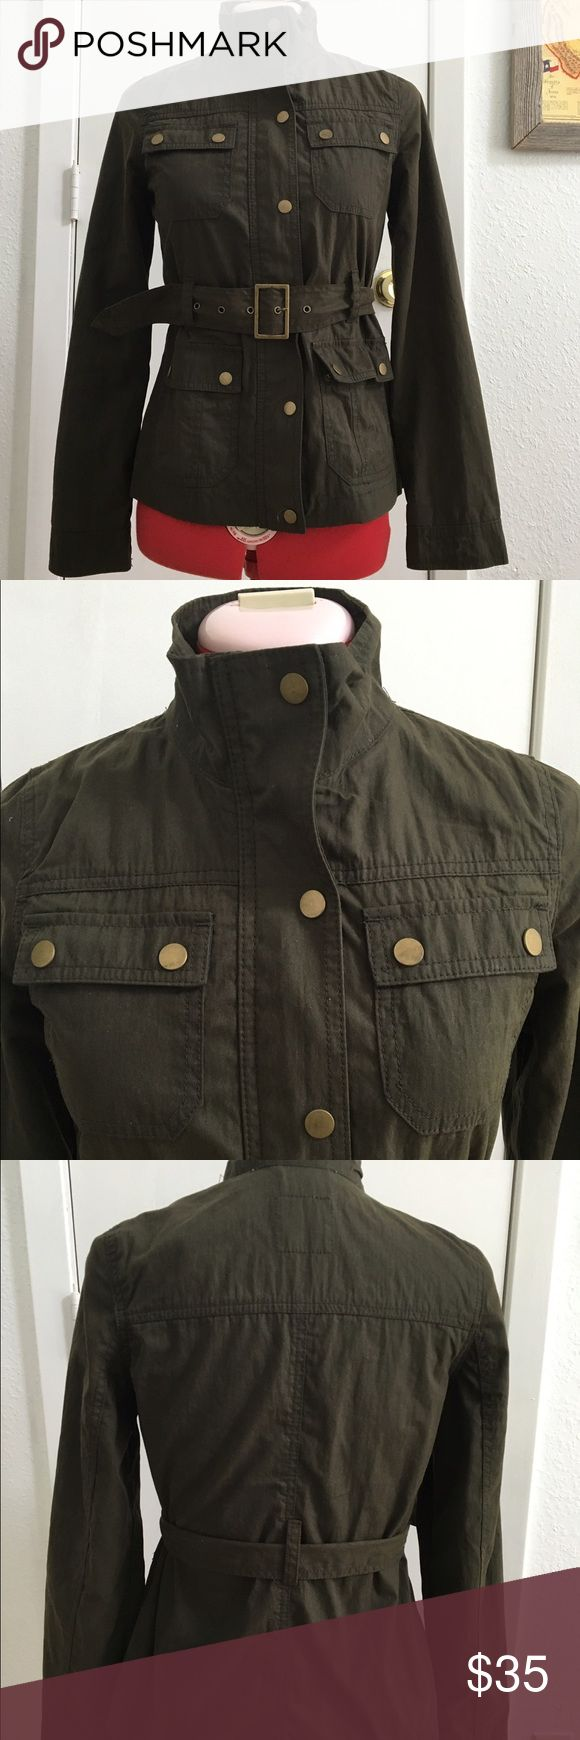 Old Navy Field Utility Jacket In excellent condition. Belted waist, snap buttons and zipper closure. Old Navy Jackets & Coats Utility Jackets